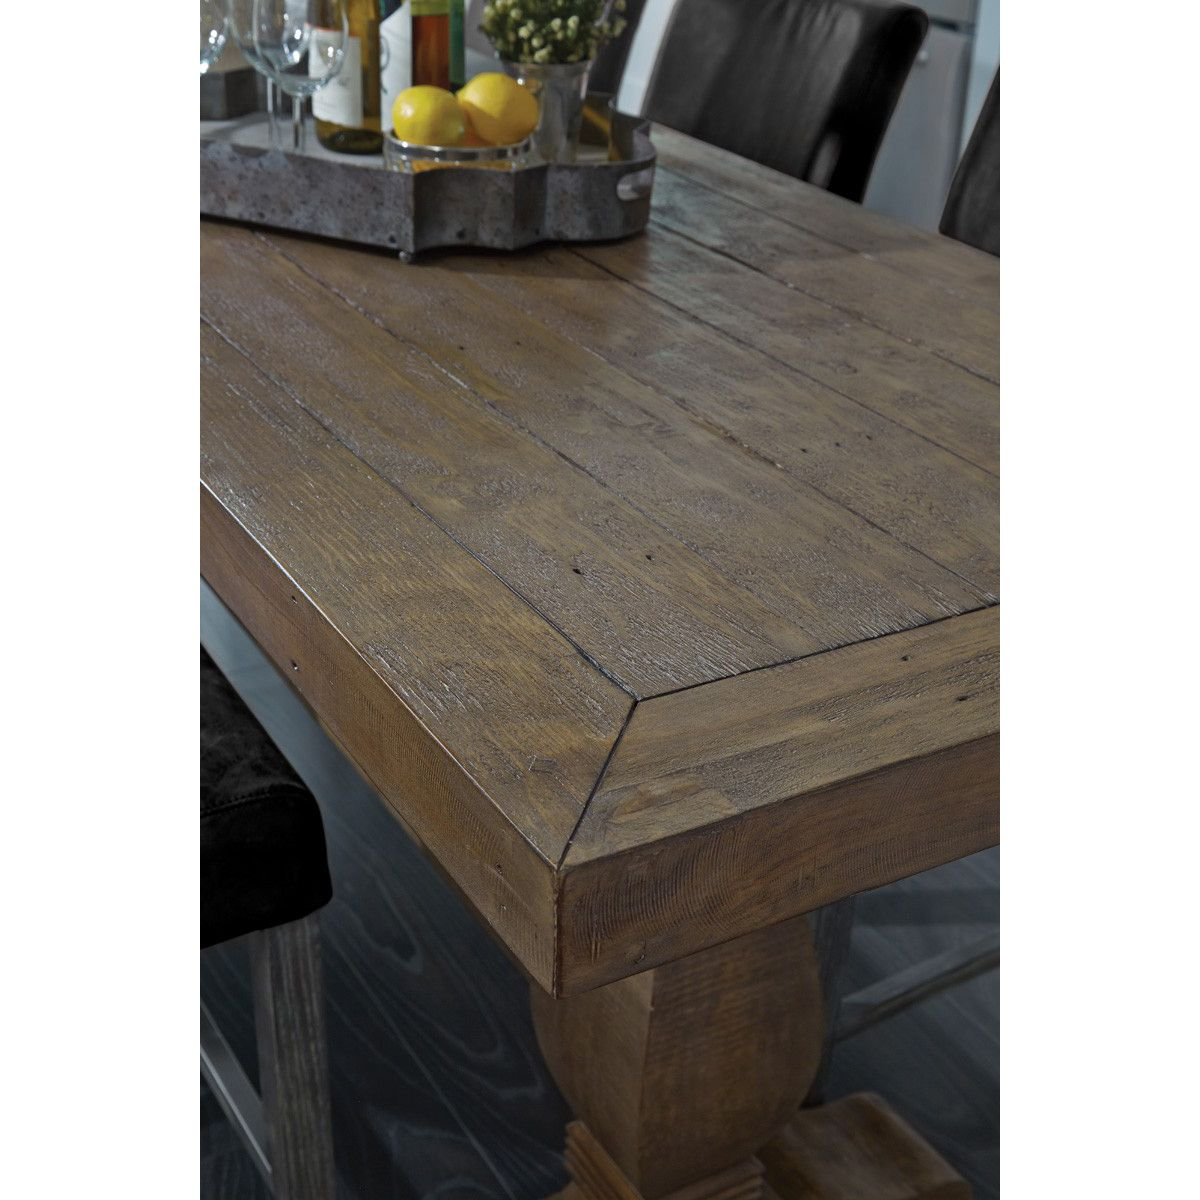 Liam Rustic Brown Distressed Solid Pine Wood Rectangular Gathering Table Large In 2021 Gathering Table Dining Table Dining Table In Kitchen